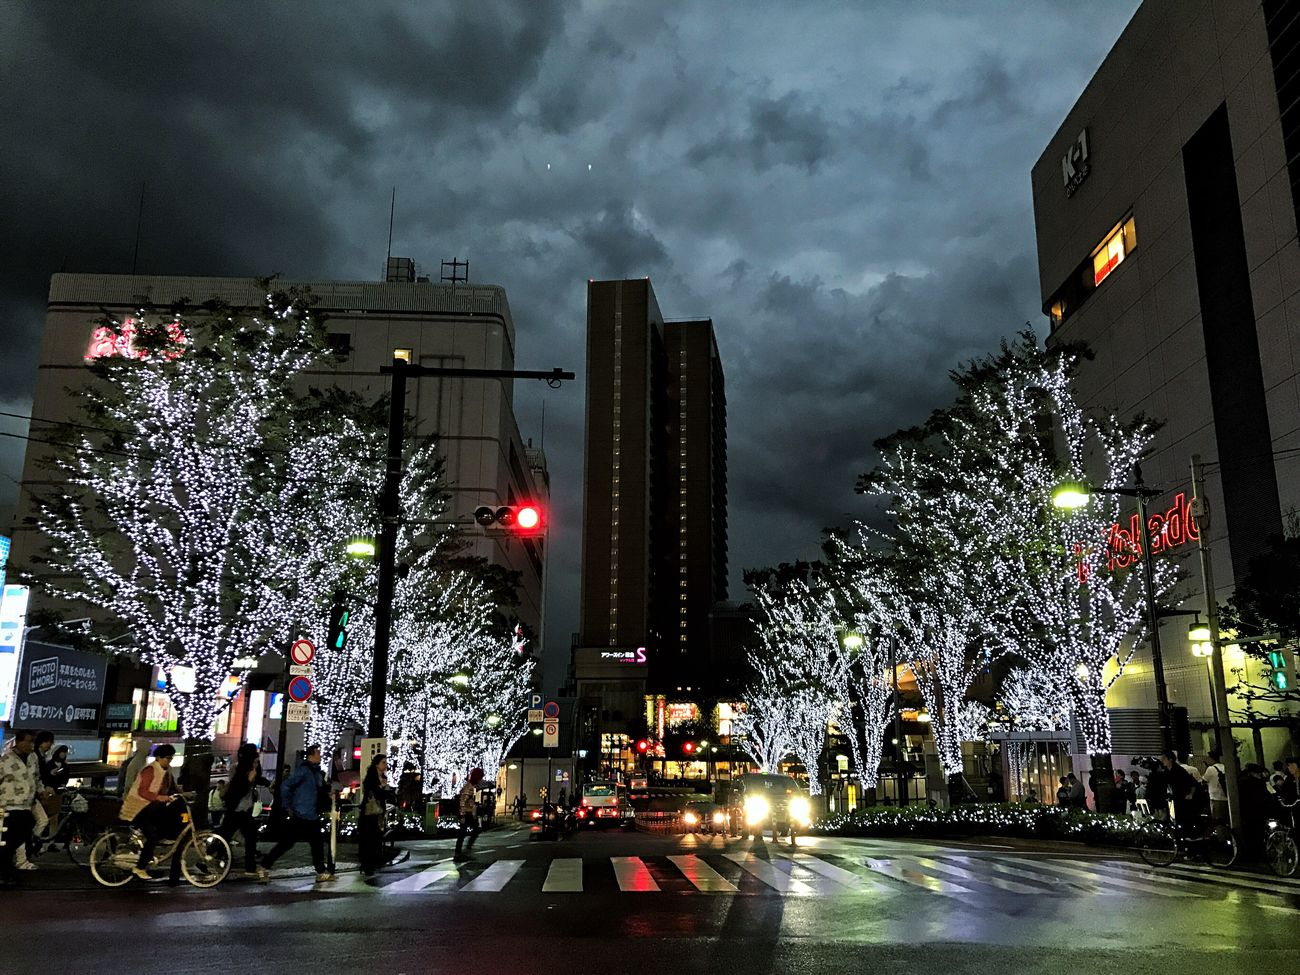 Illuminated Tree Street City Architecture Night Christmas Lights Built Structure Building Exterior Sky IPhoneography Outdoors Road Cloud - Sky No People Christmas Decoration Storm Cloud Christmas Tree Tokyo Japan Streetphotography EyeEm Streets Eye4photography  December Nightphotography